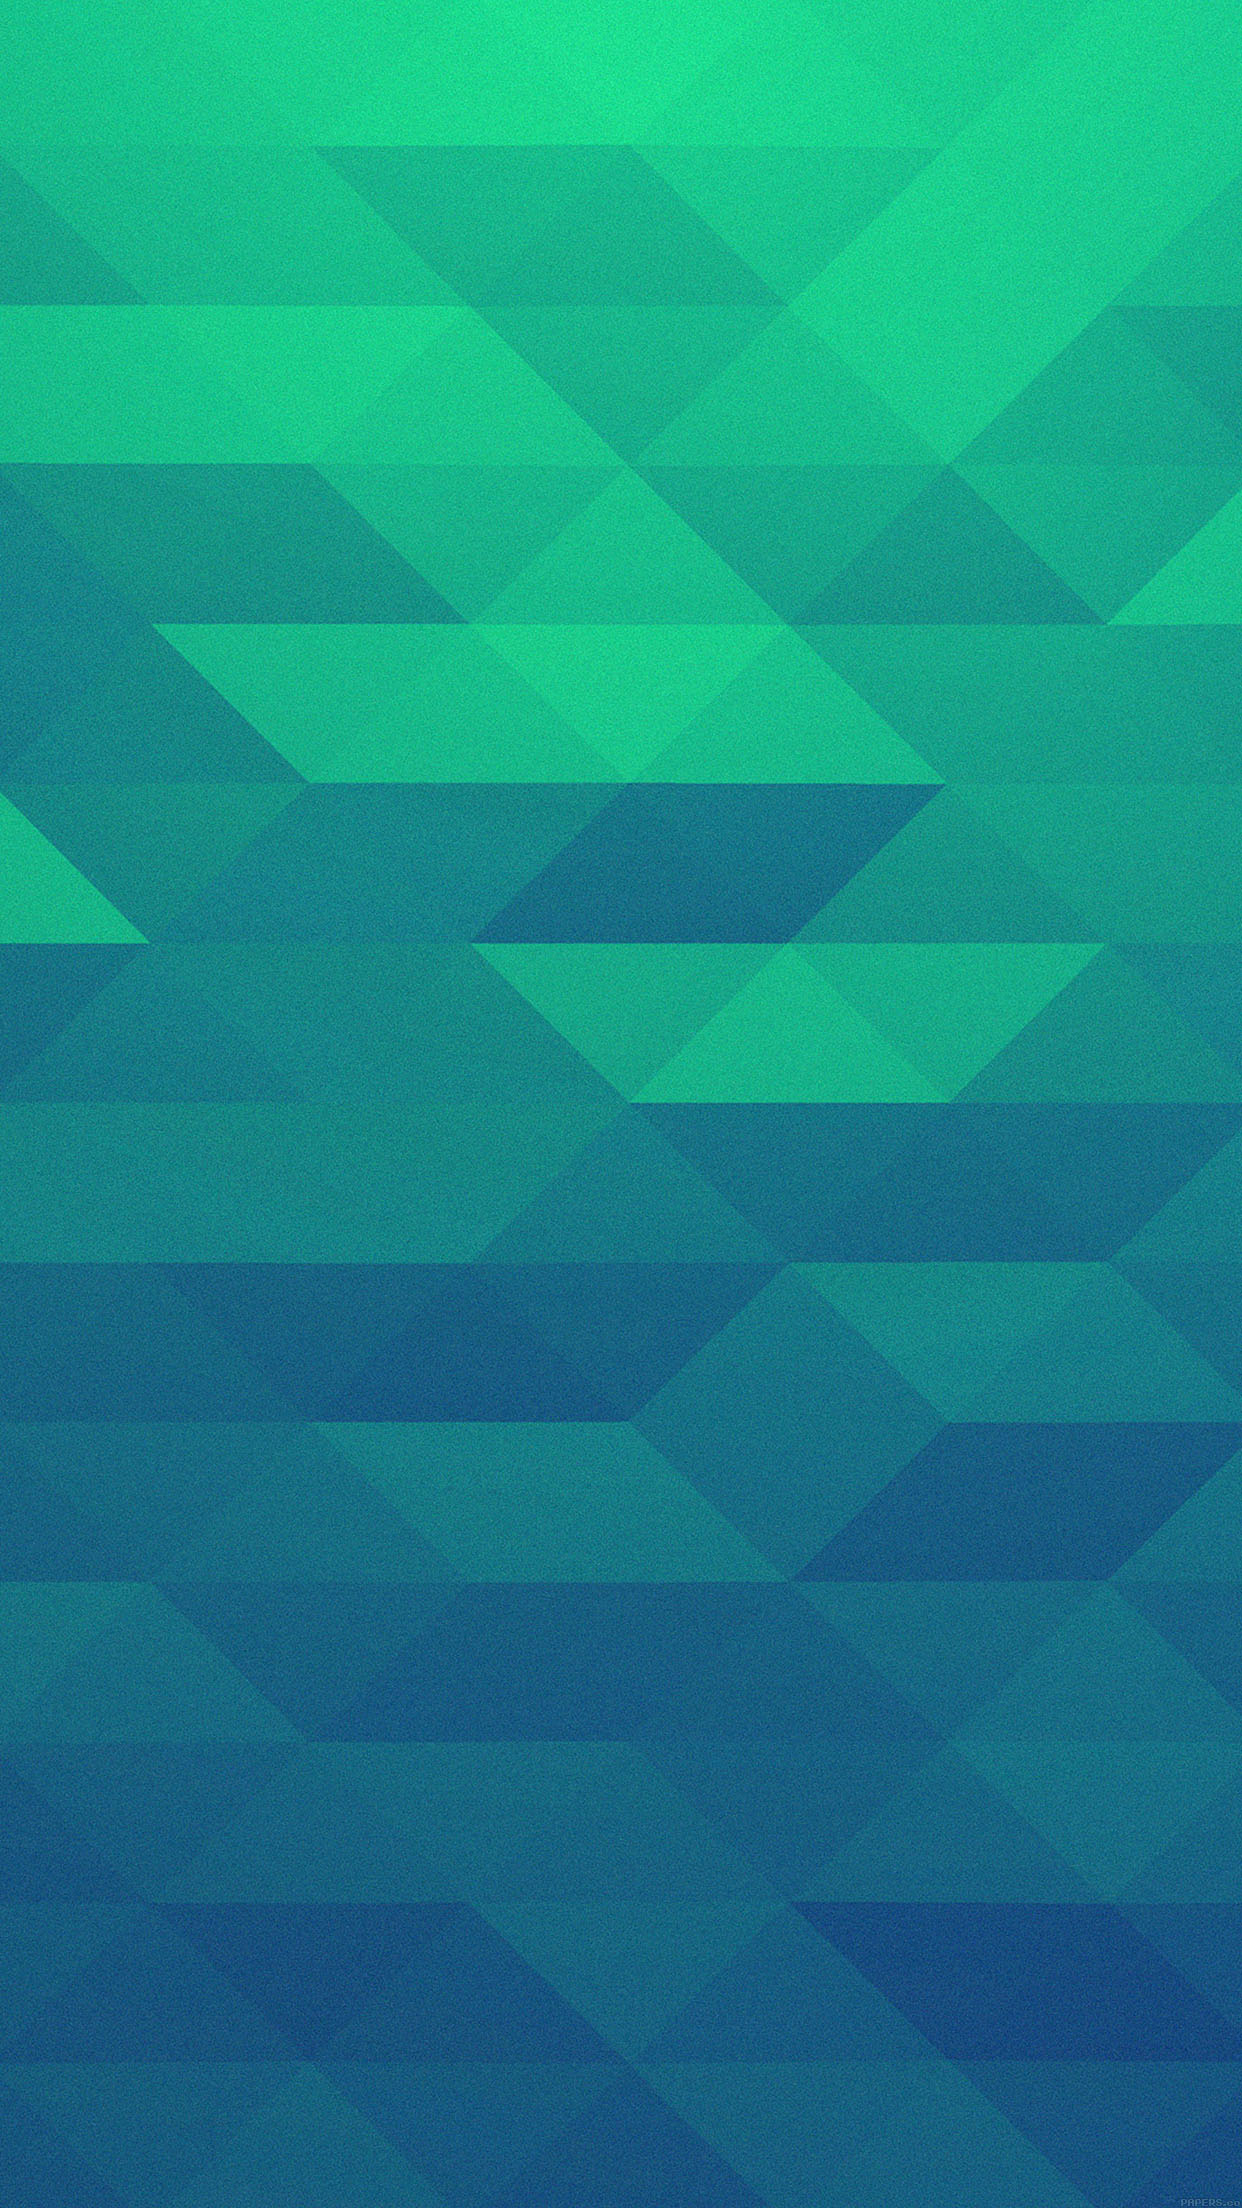 Blue And Green Dining Room: Vb10-wallpaper-green-blue-patterns